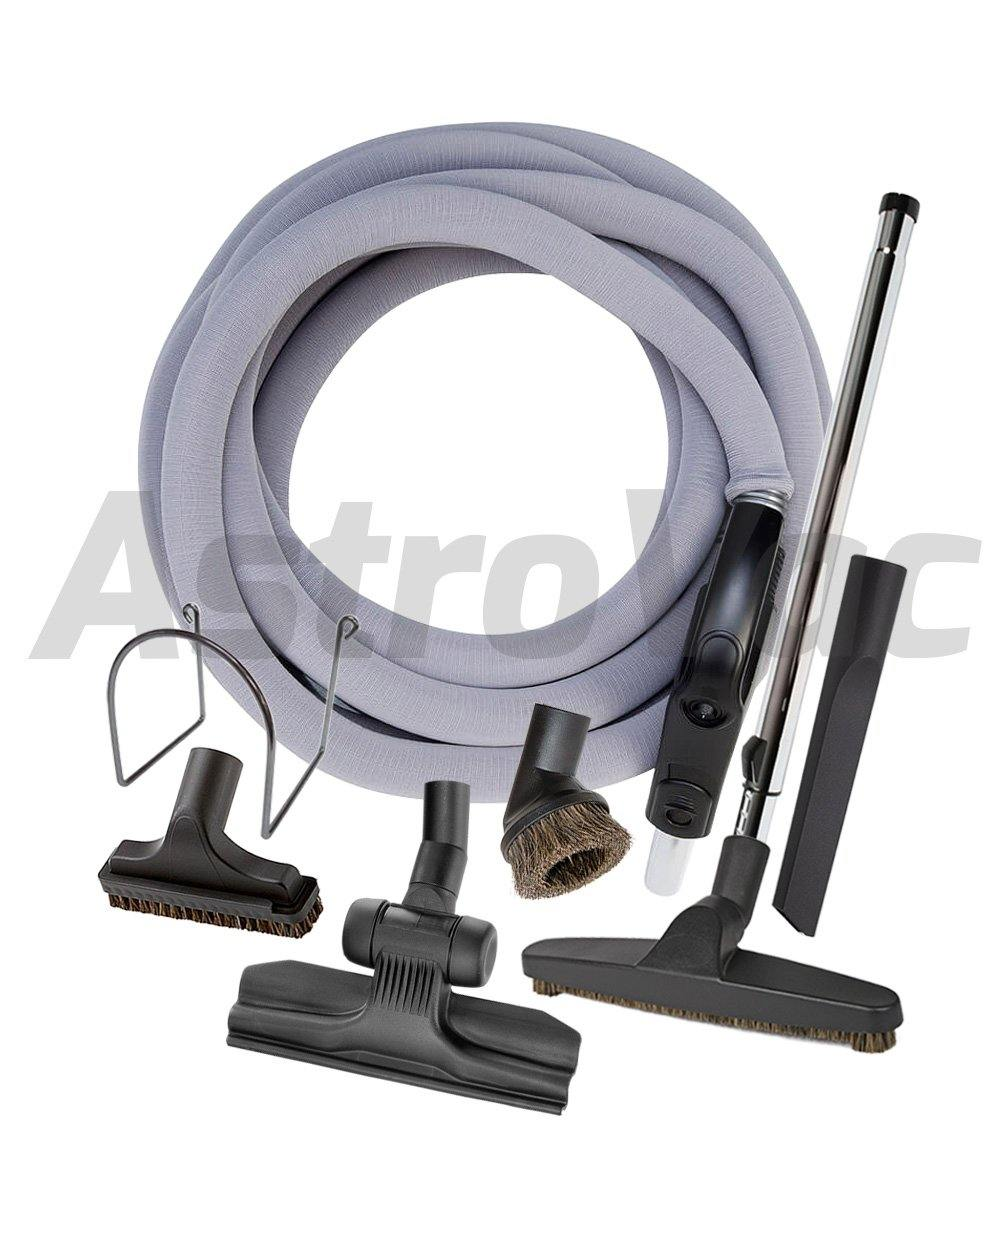 Switch Hose Ezyglide Tool Kit with Protective Cover | 9M - AstroVac Ducted Vacuum Warehouse